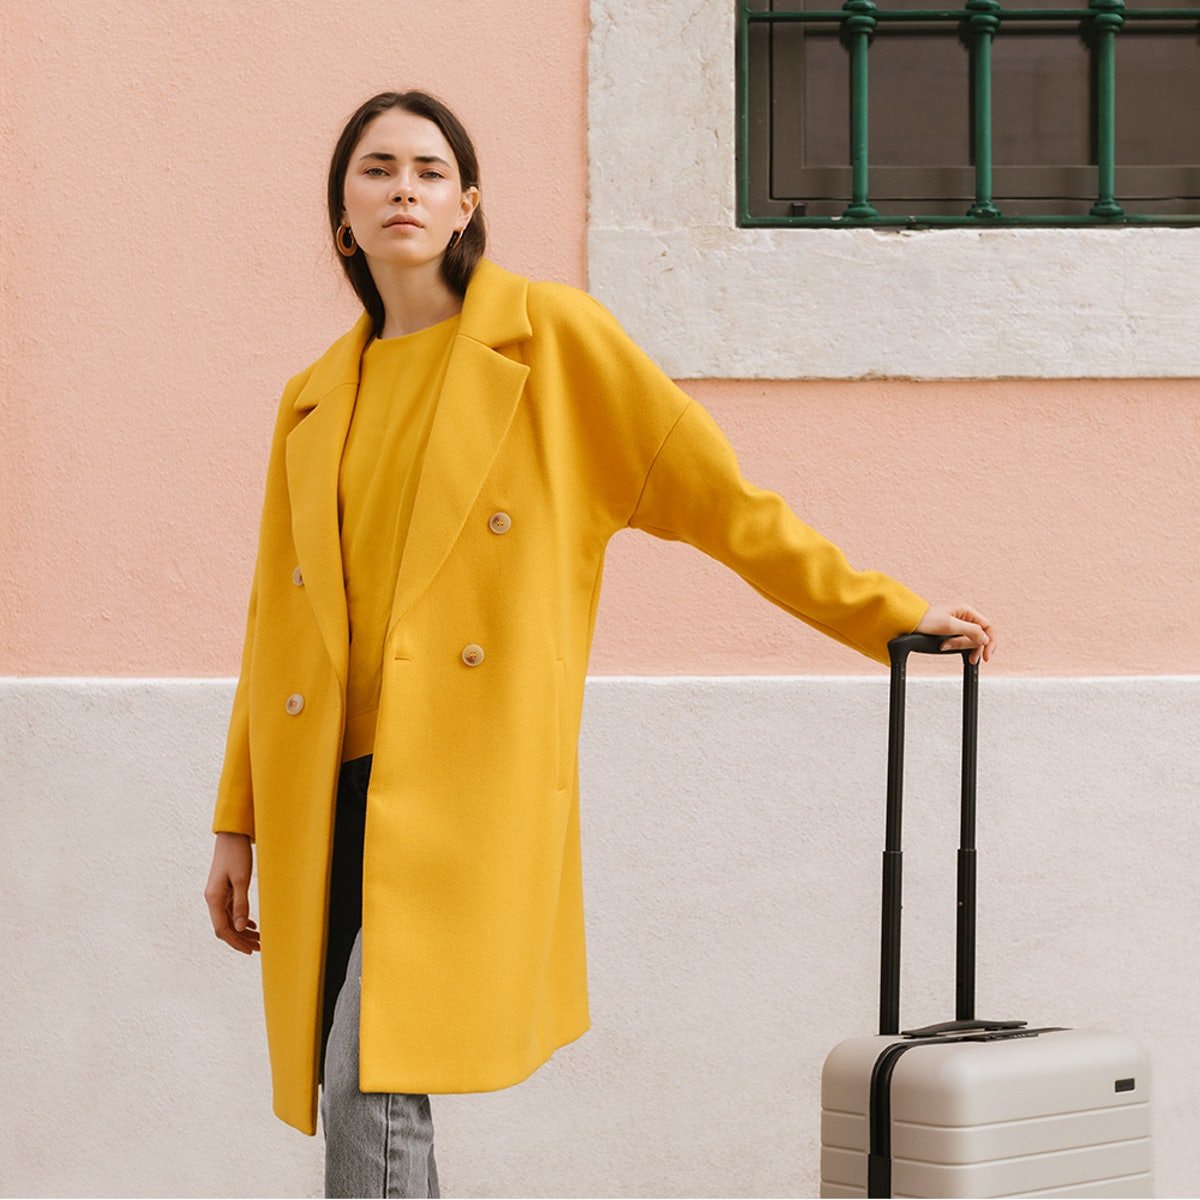 5 Comfy, Stylish Travel Outfits Fashion Insiders Swear By For The Holidays